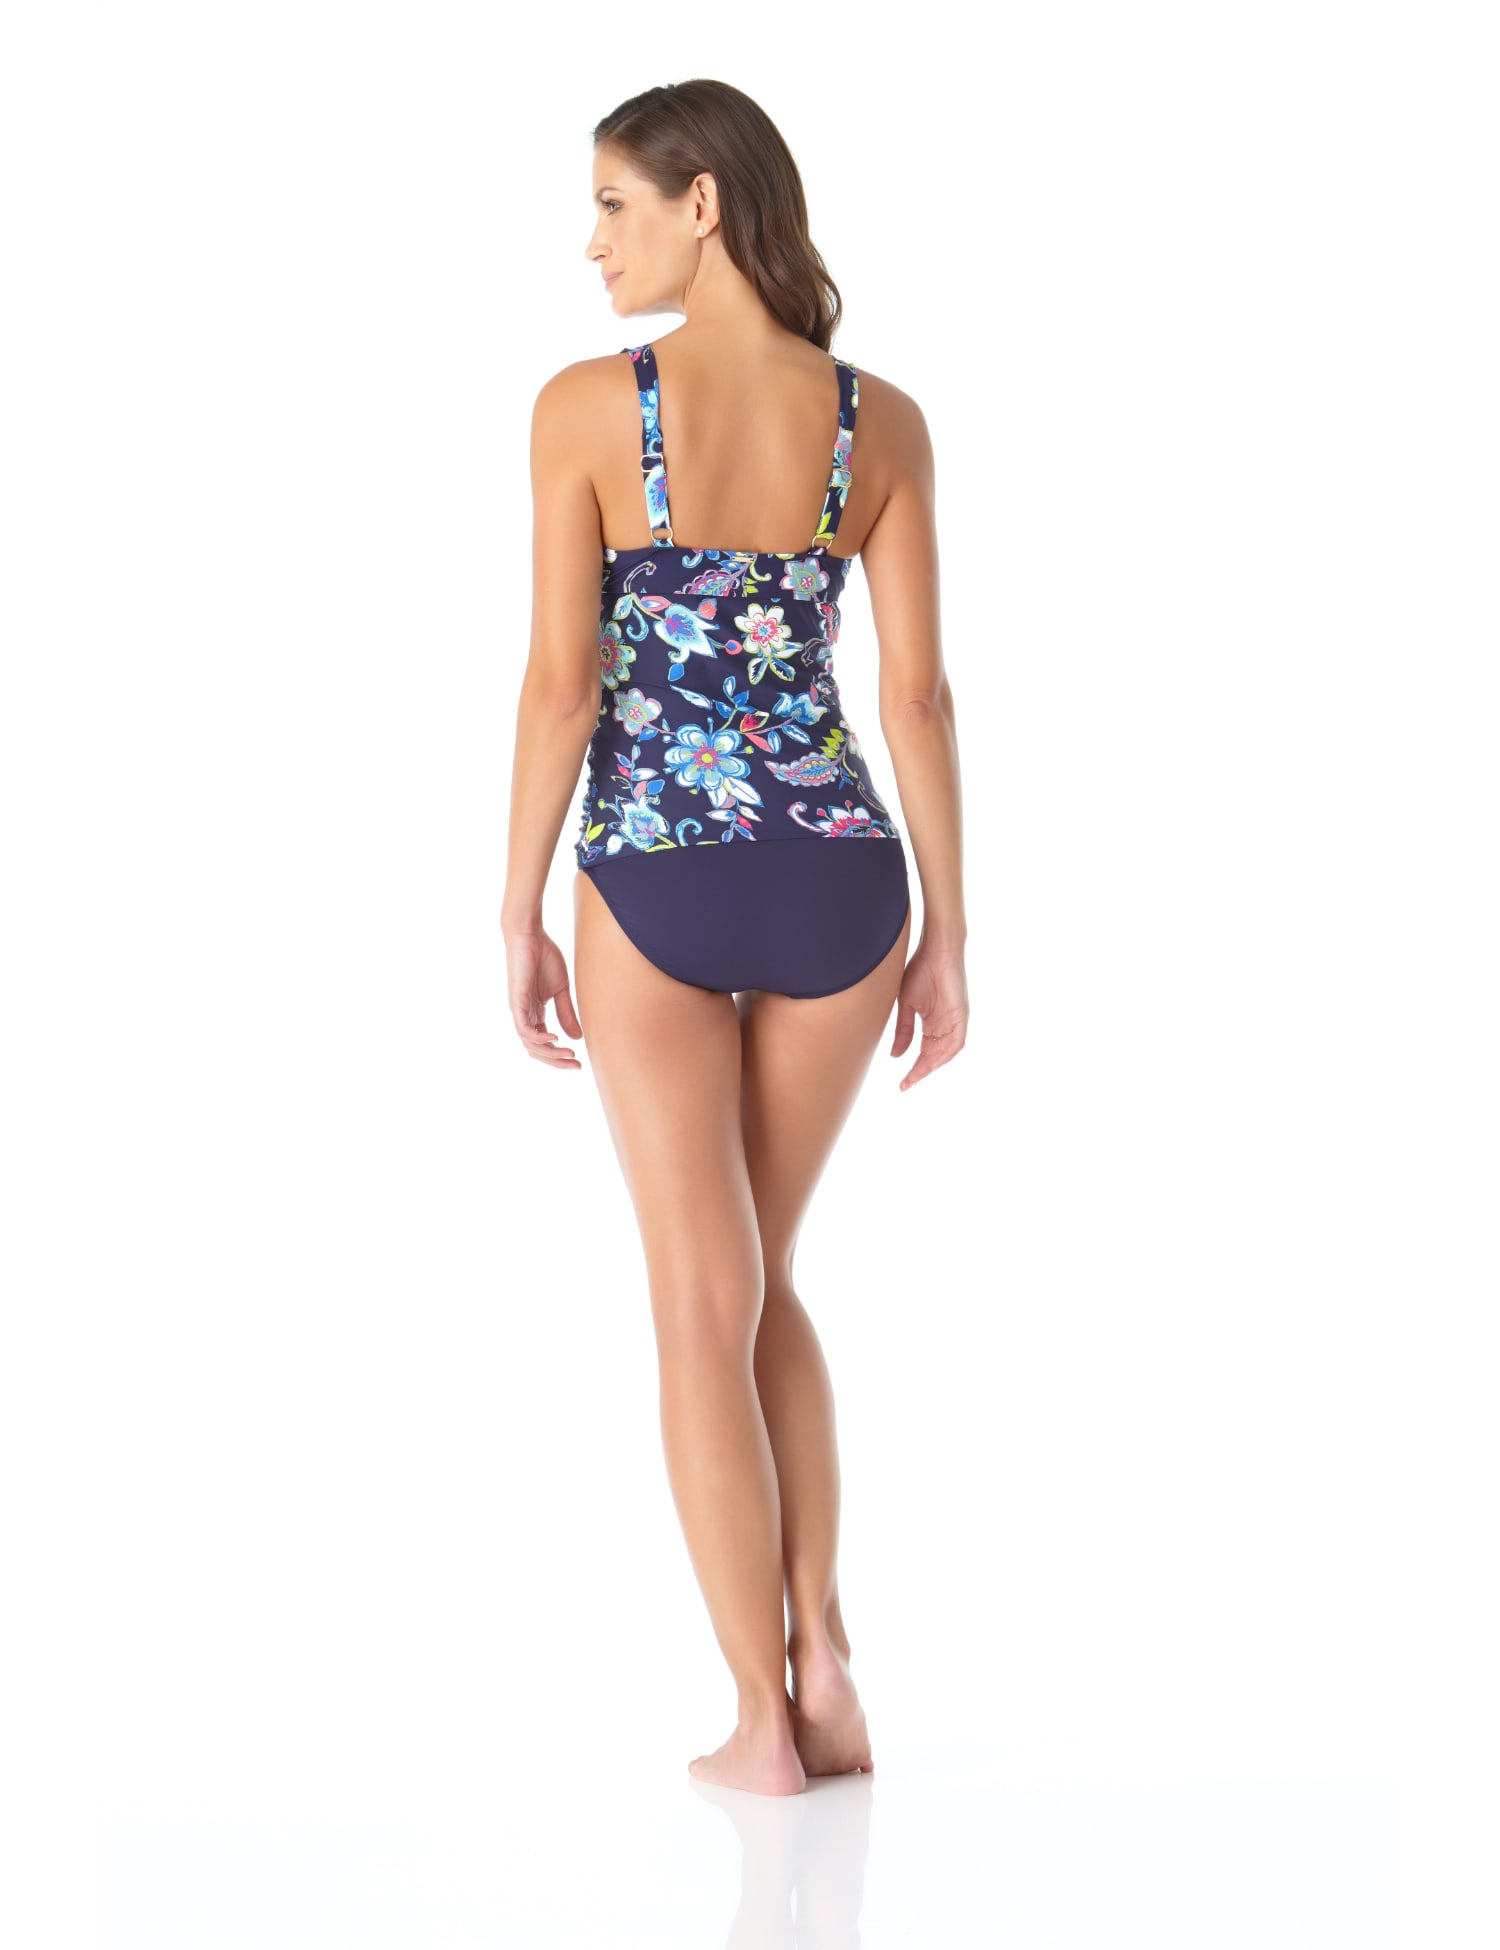 Anne Cole® Holiday Paisley Underwire Tankini Swimsuit Top - Multi - Back